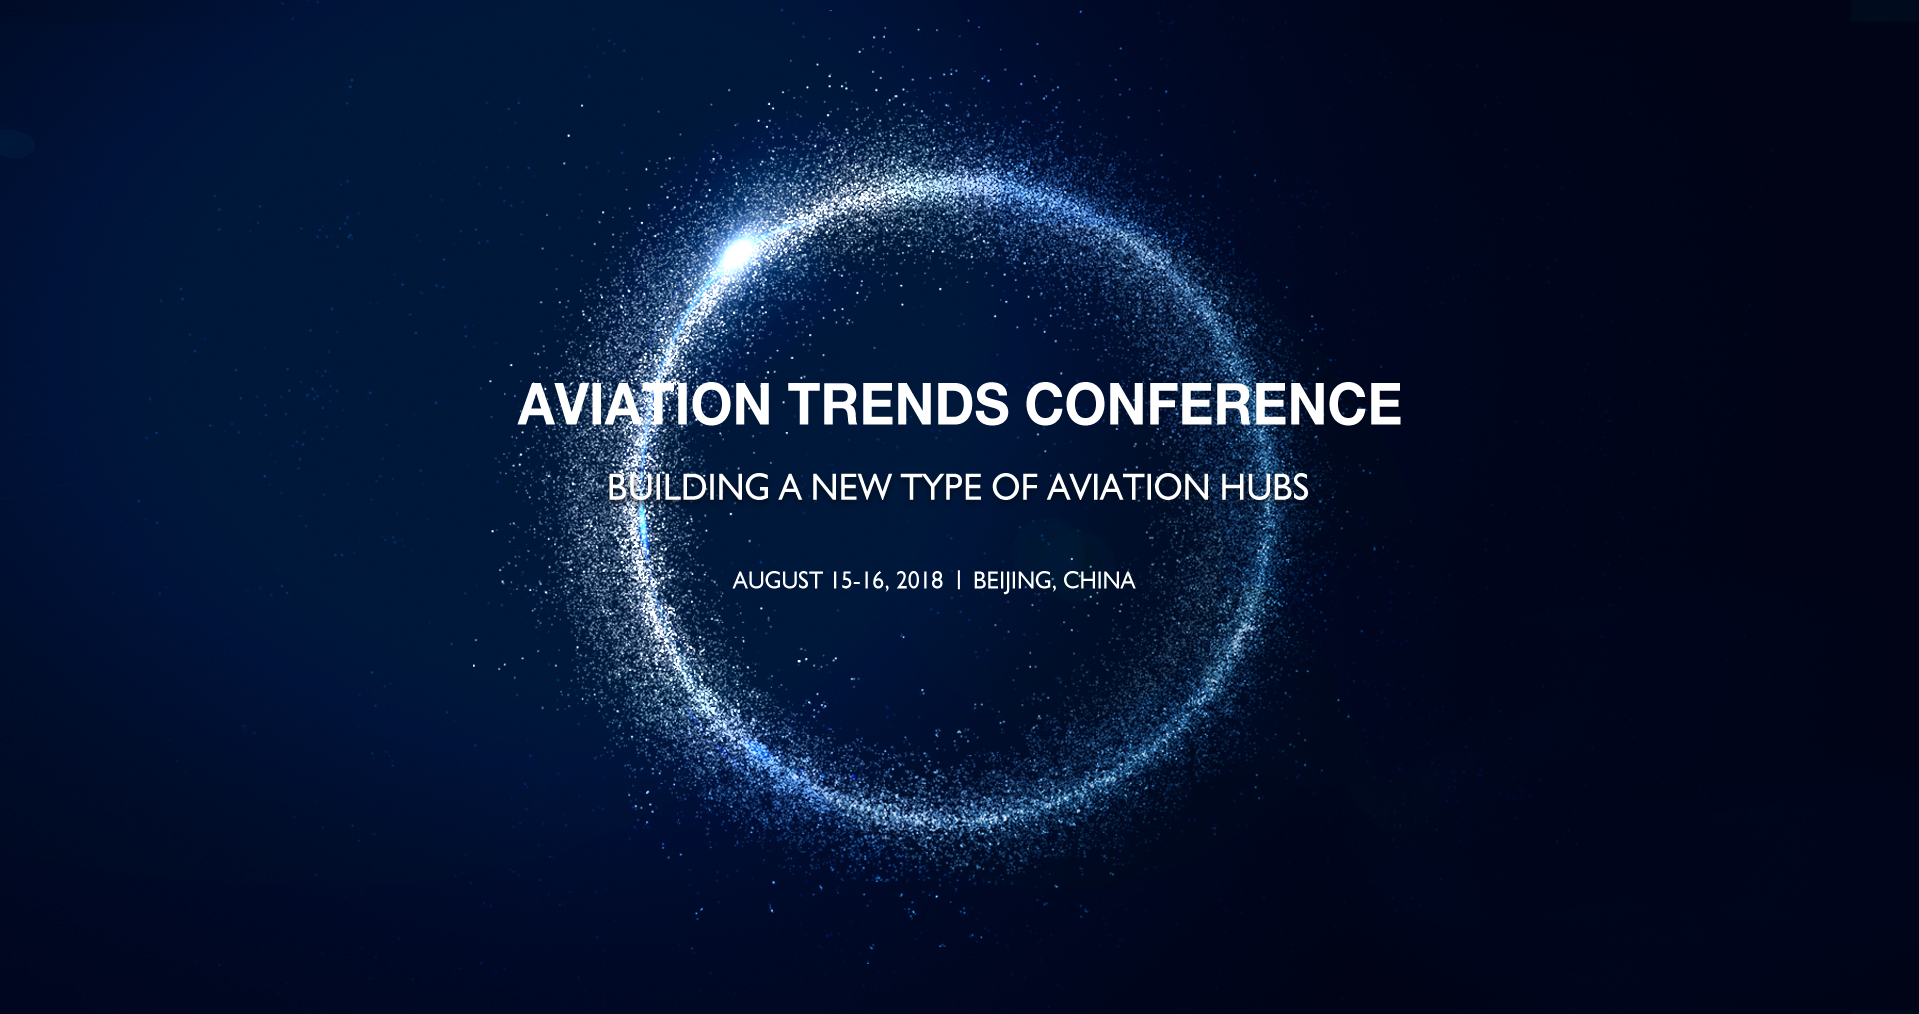 The Aviation Trends Conference 2018